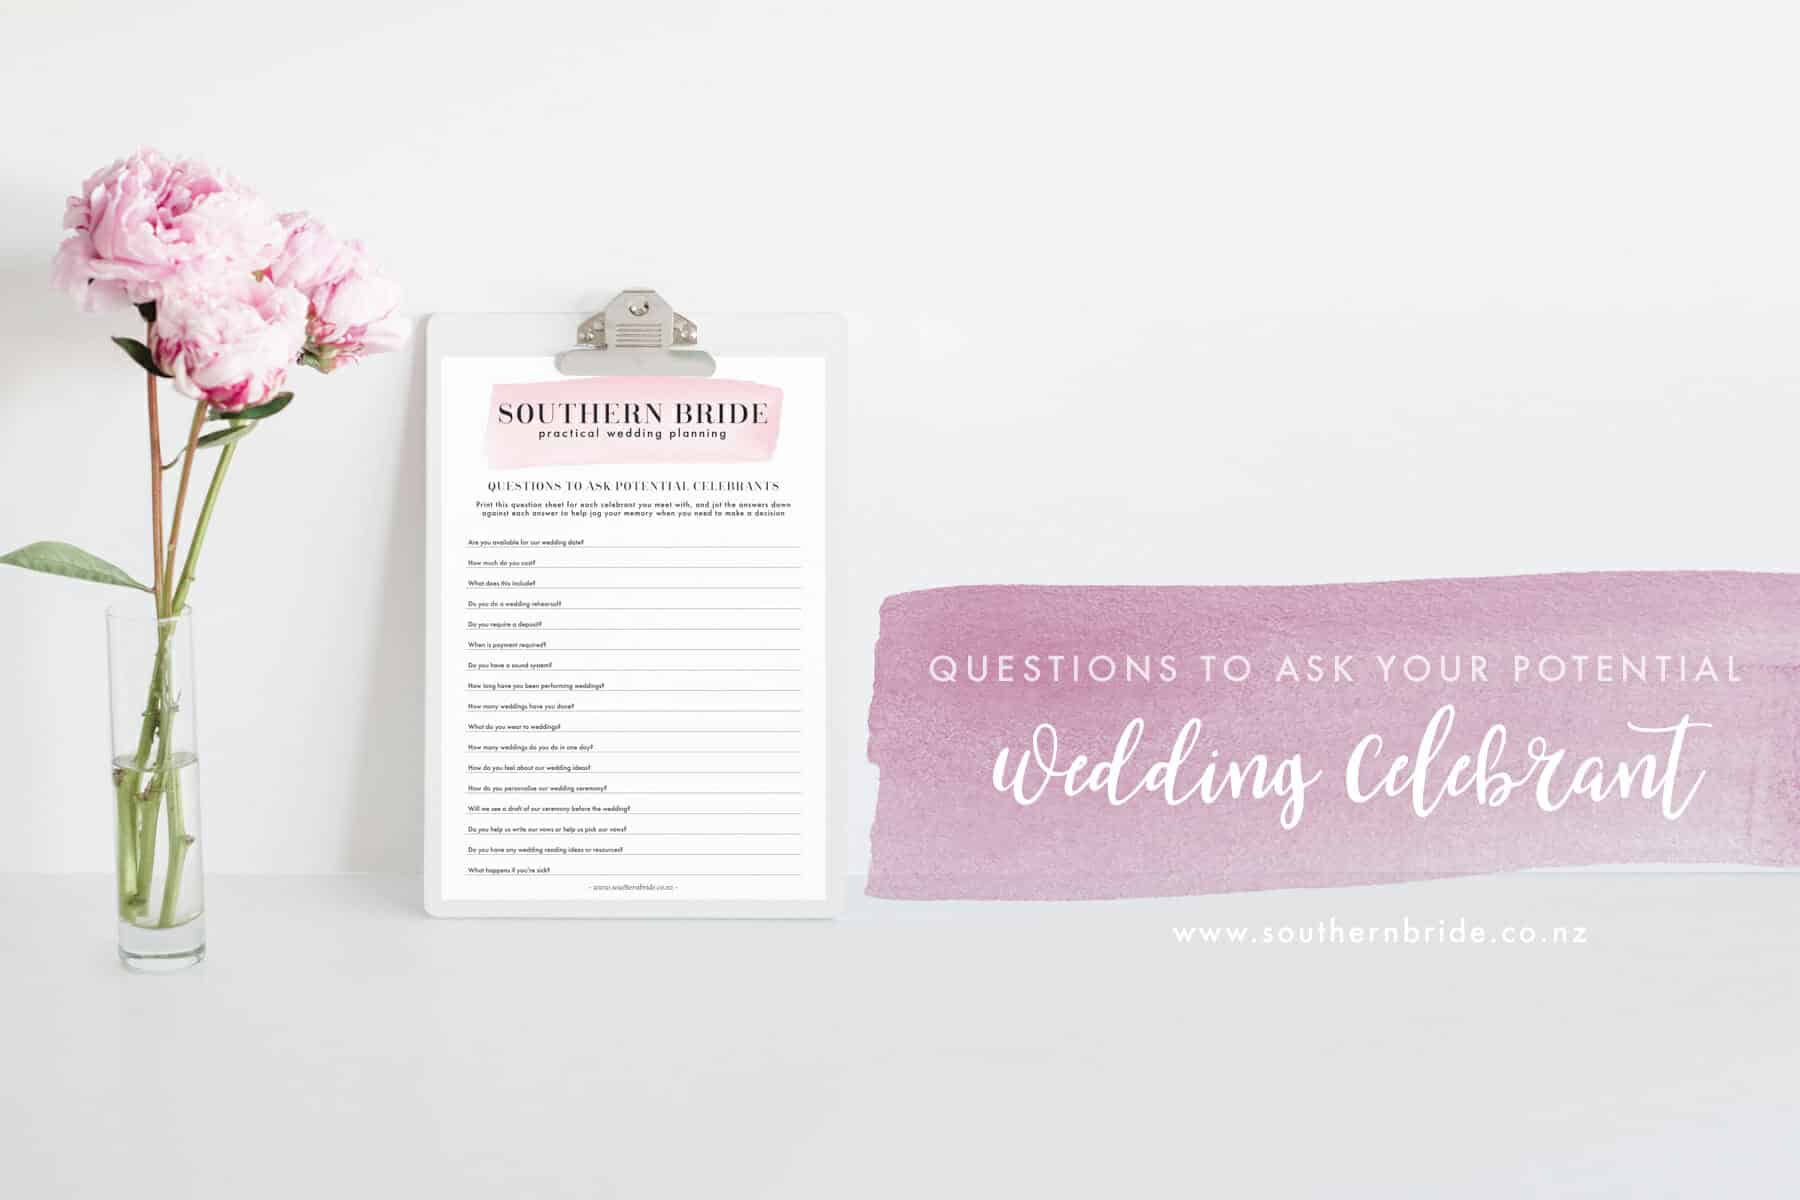 Questions-to-ask-potential-wedding-celebrant Jpg